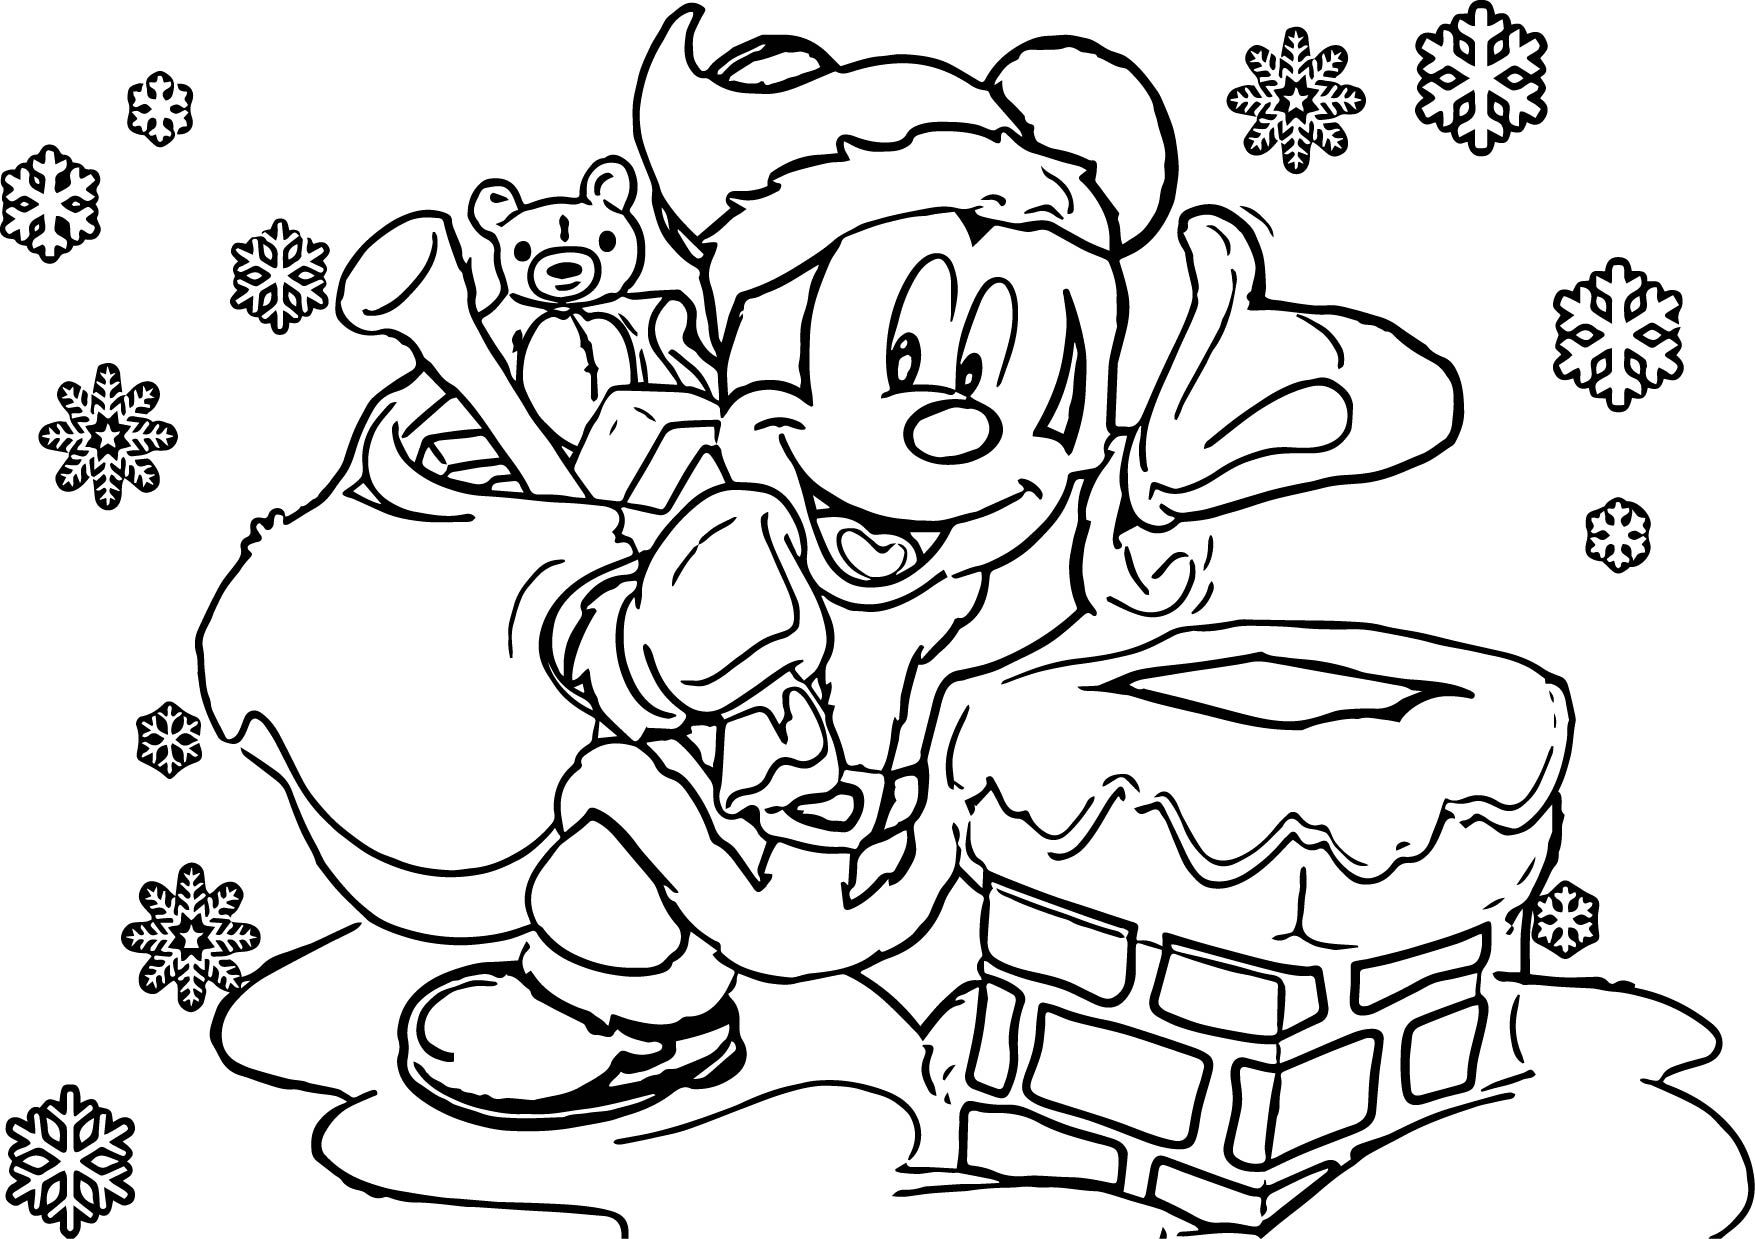 Disney Christmas Coloring Pages | Disney coloring pages ...